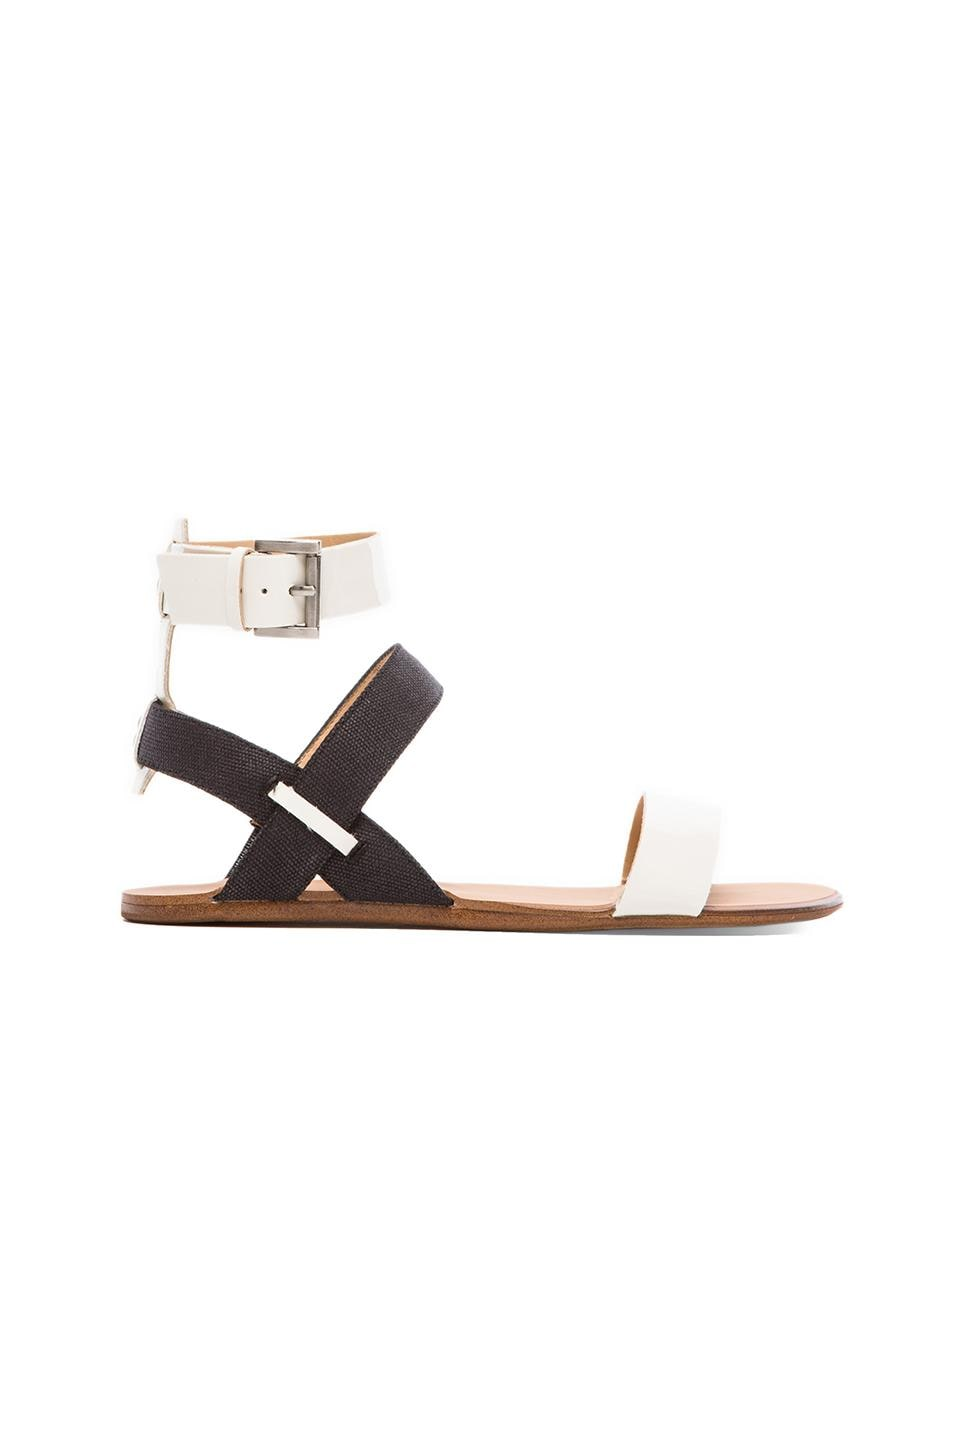 Joe's Jeans Eryn Sandal in Bone/Black